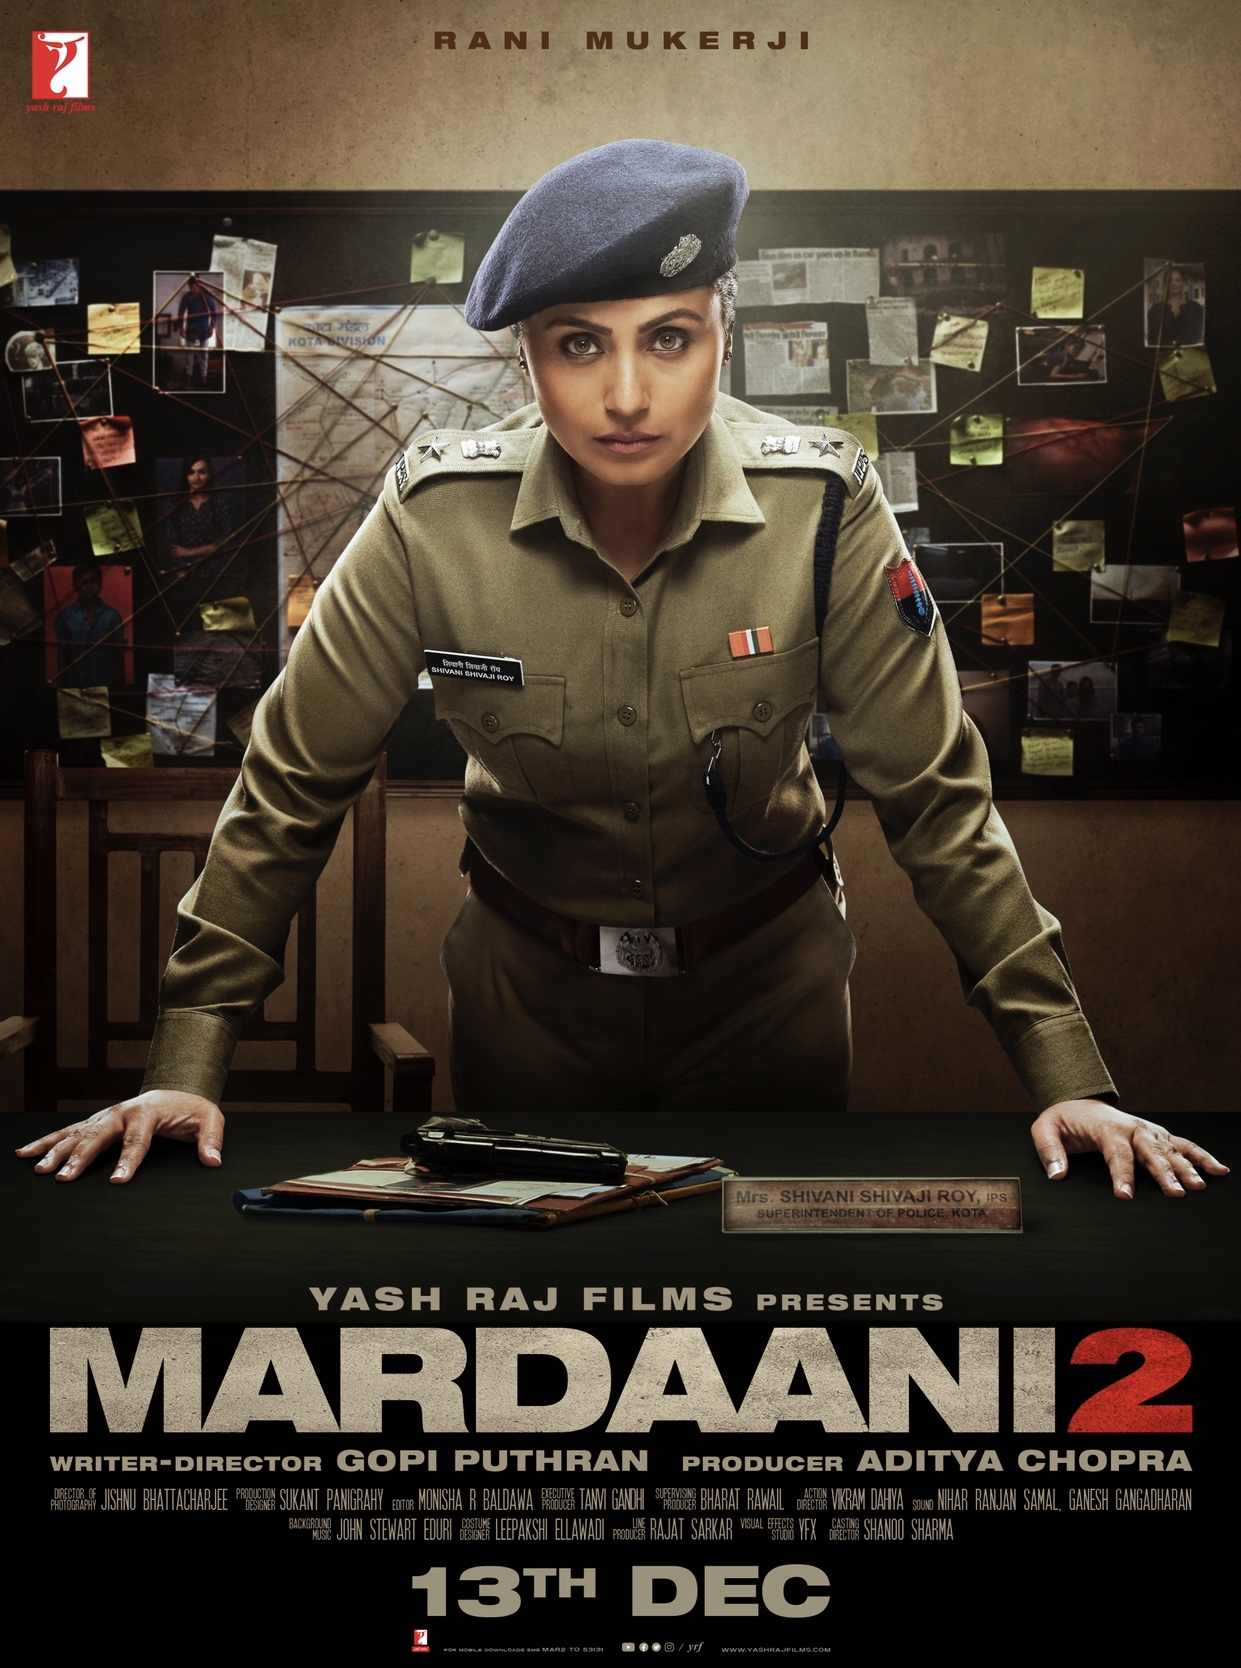 Mardaani 2 (2020) Hindi Amazon 720p WEB-DL x265 AAC 850MB